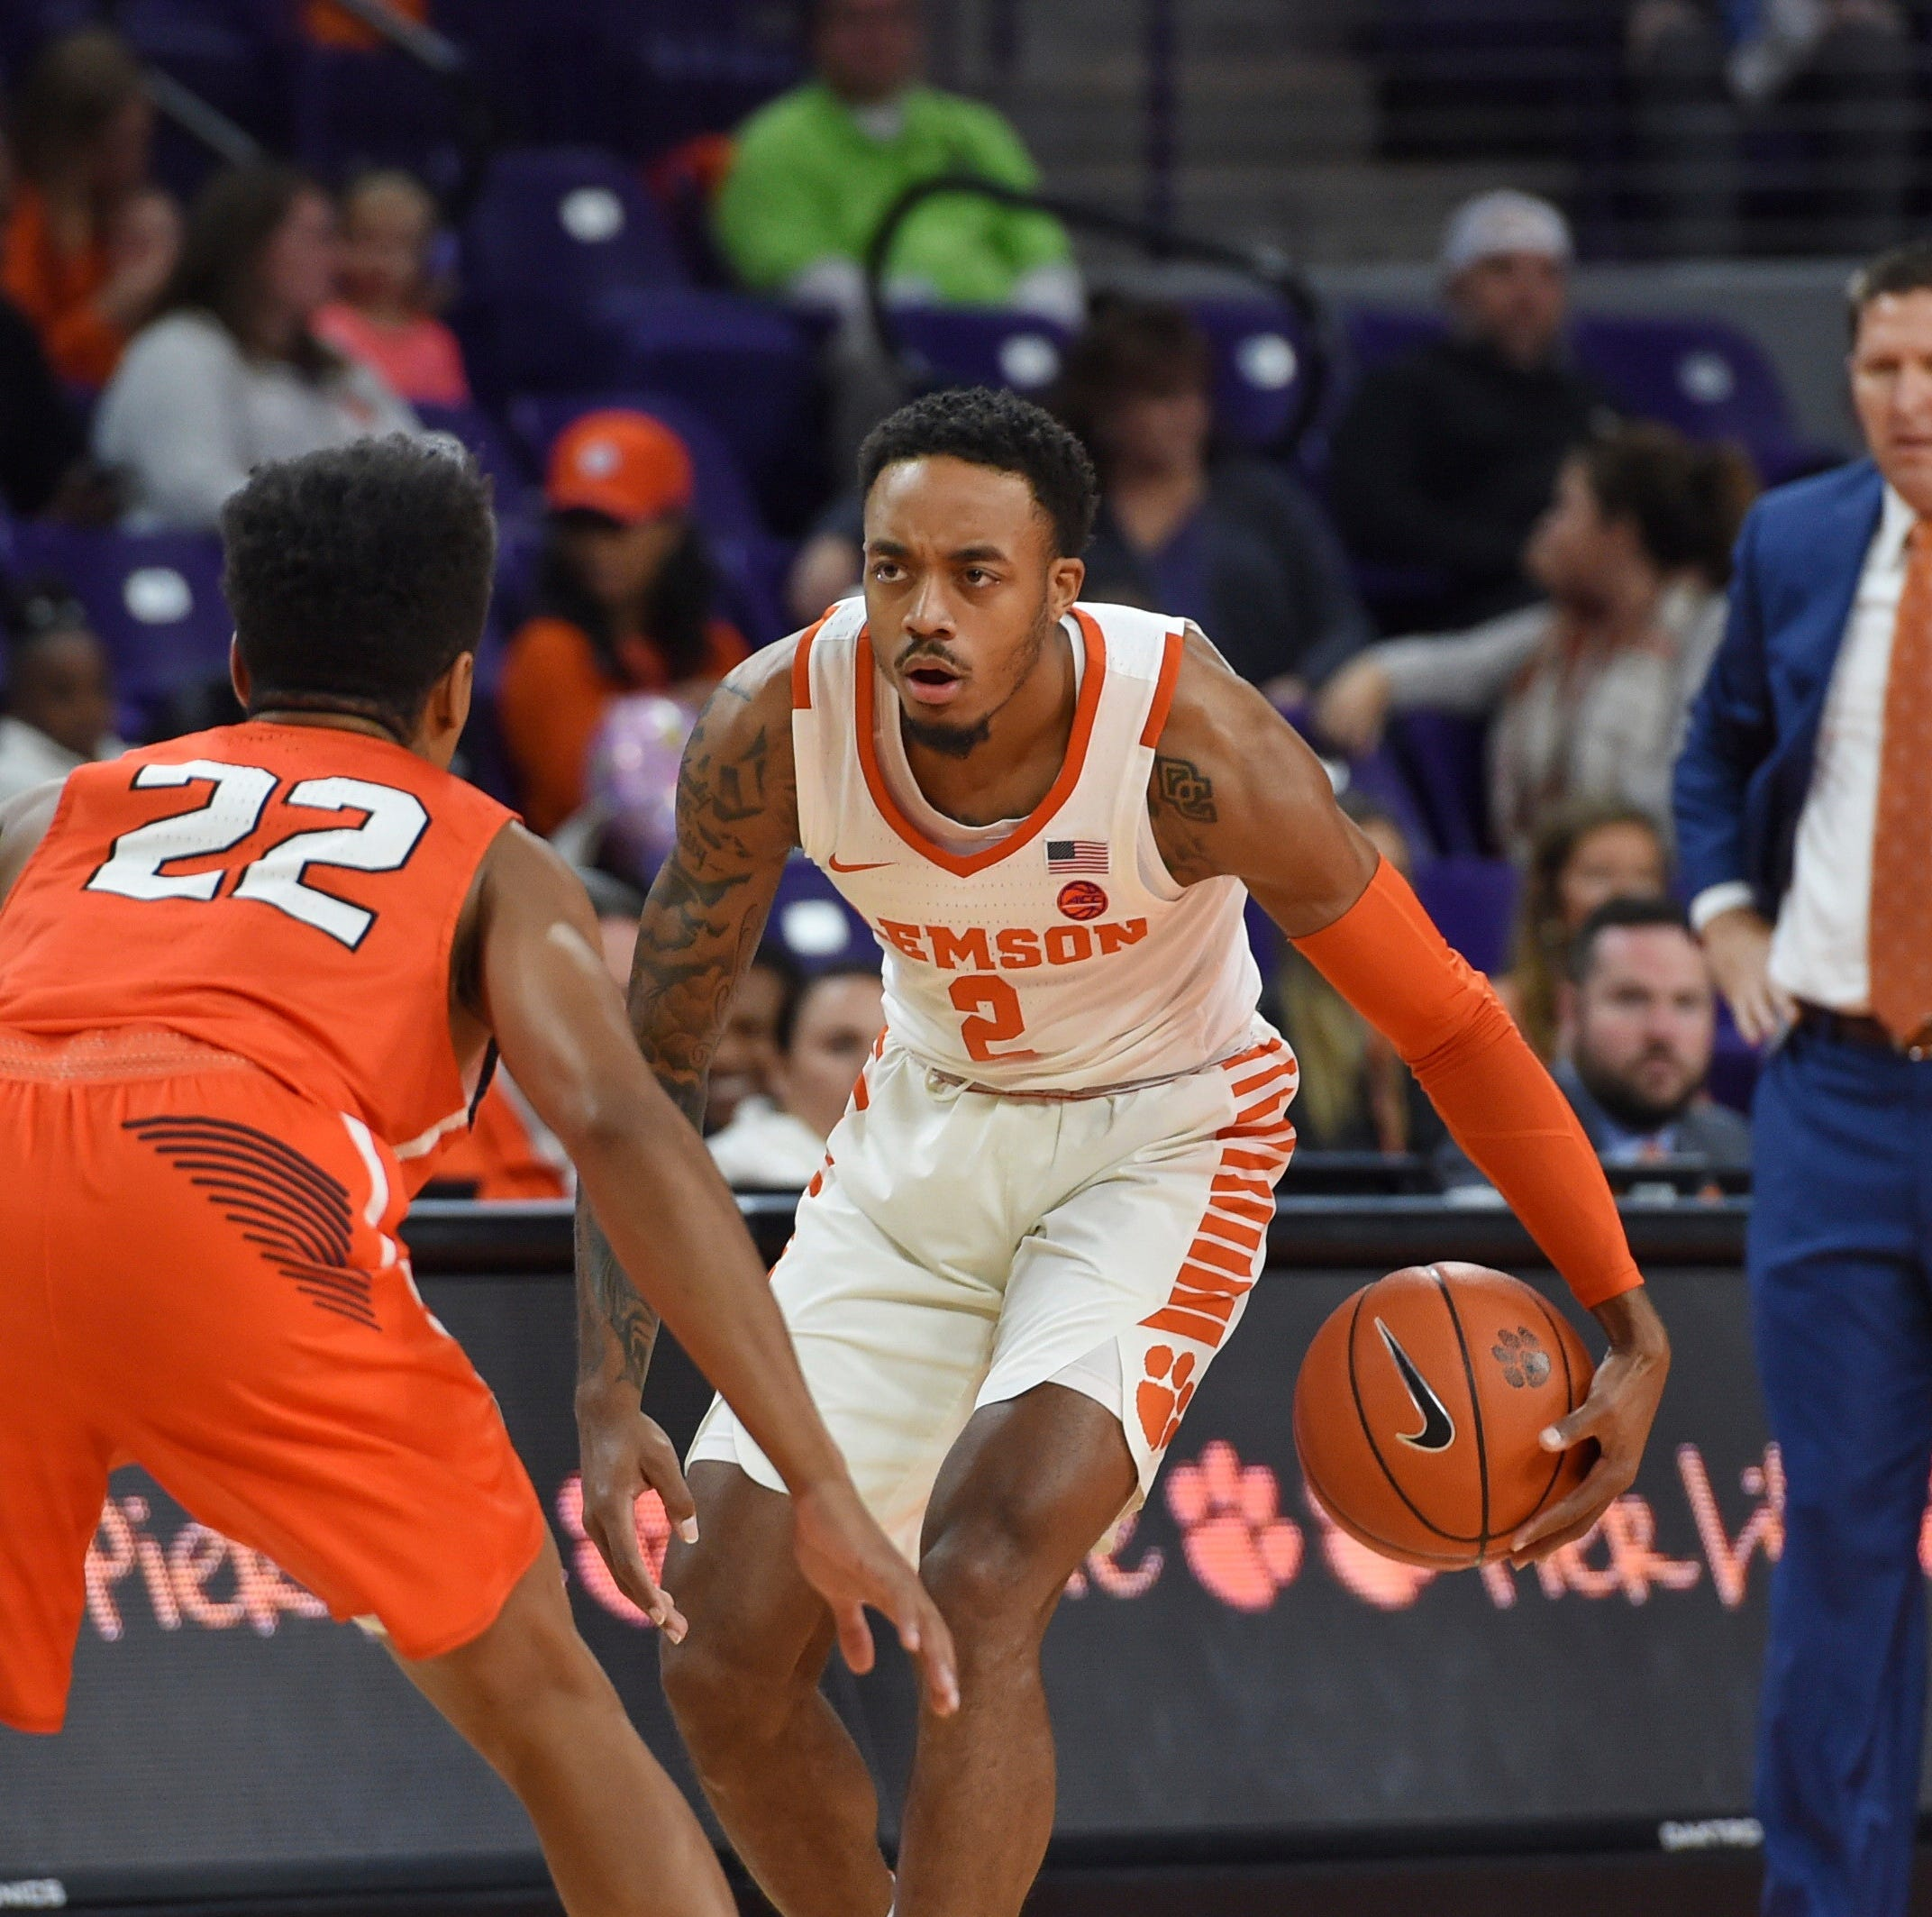 Clemson basketball update: Tigers need Marcquise Reed back in lineup quickly